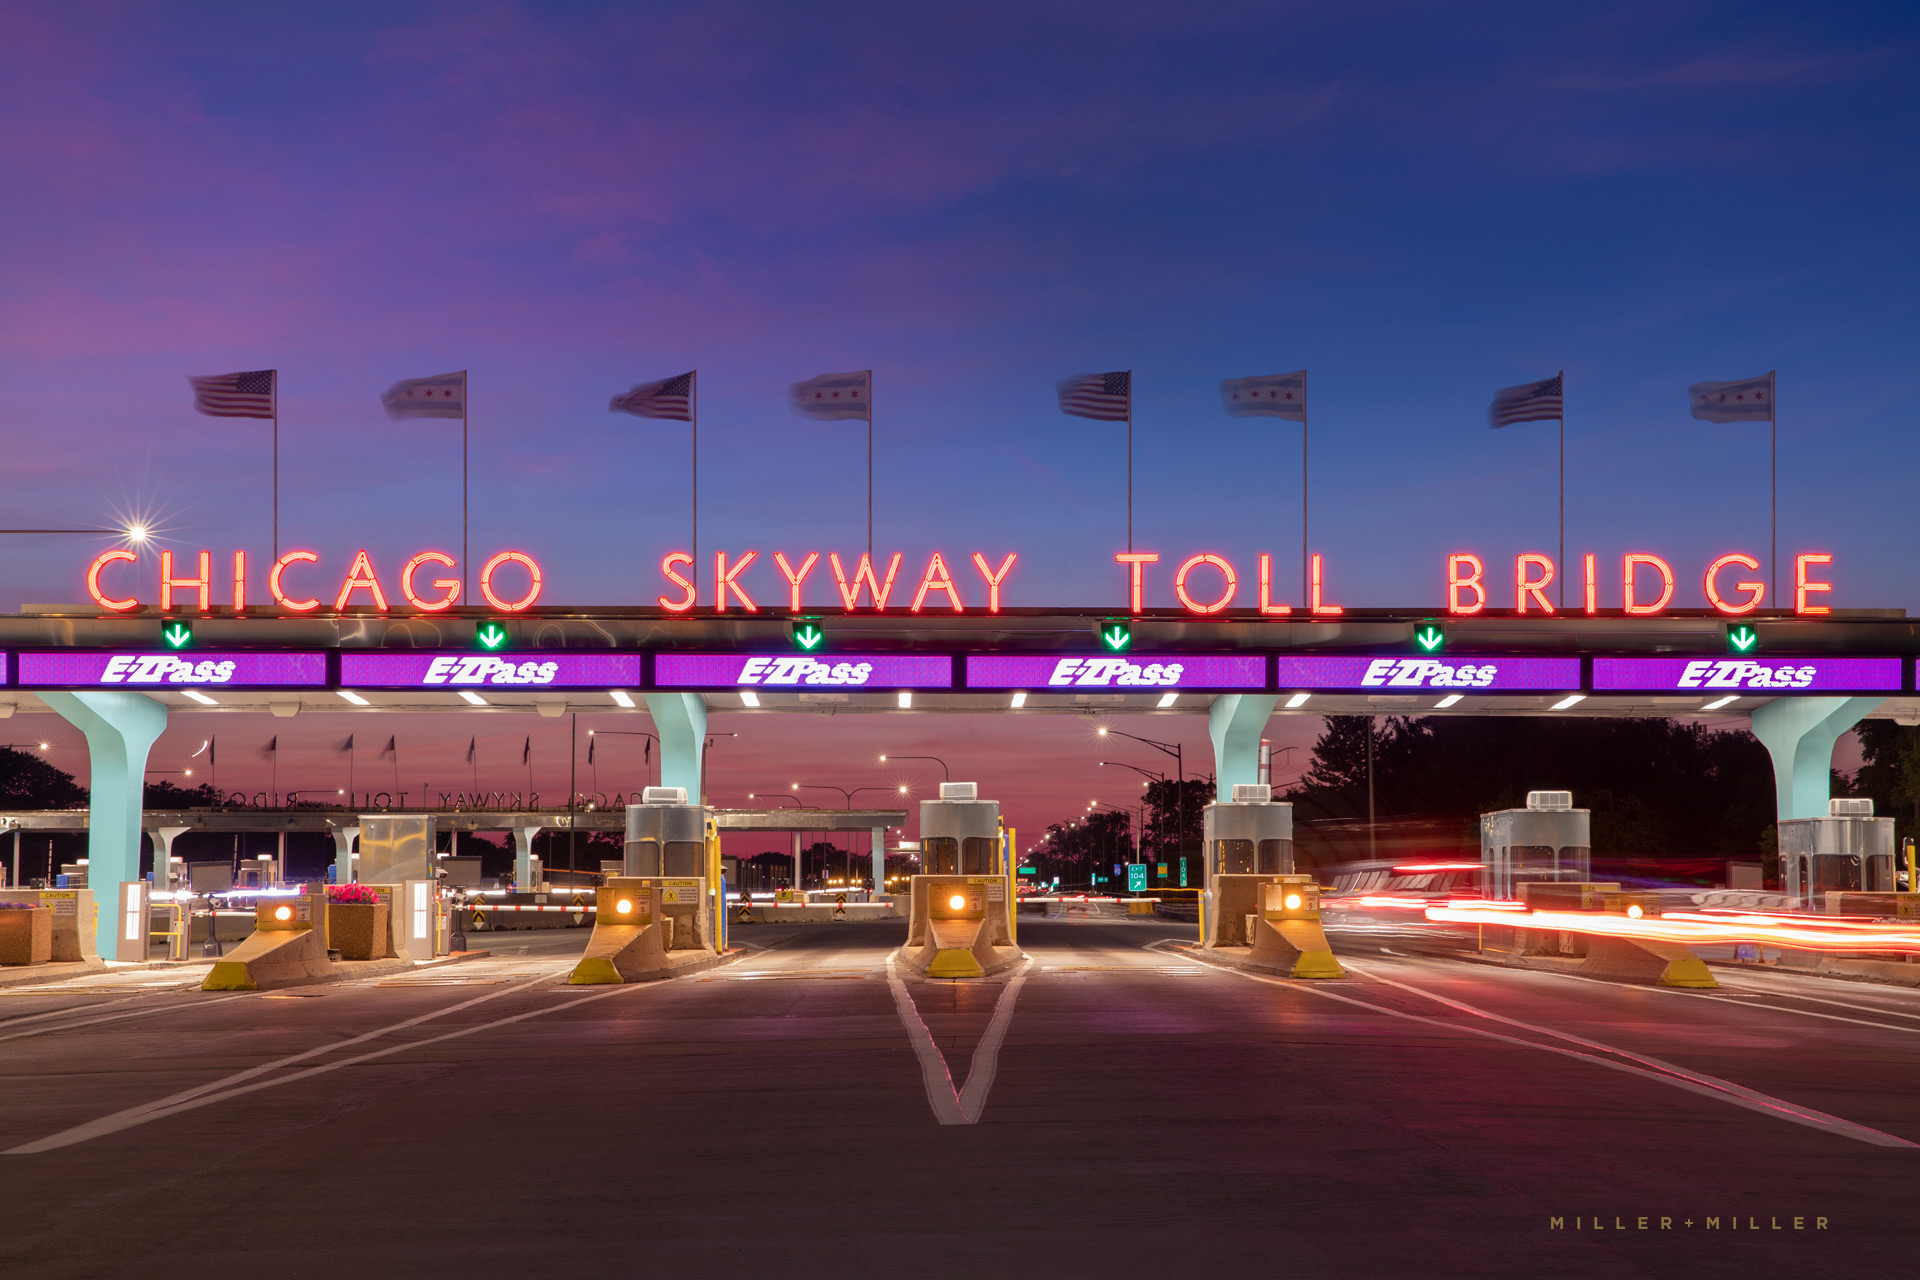 Chicago Skyway Toll Bridge Plaza restoration